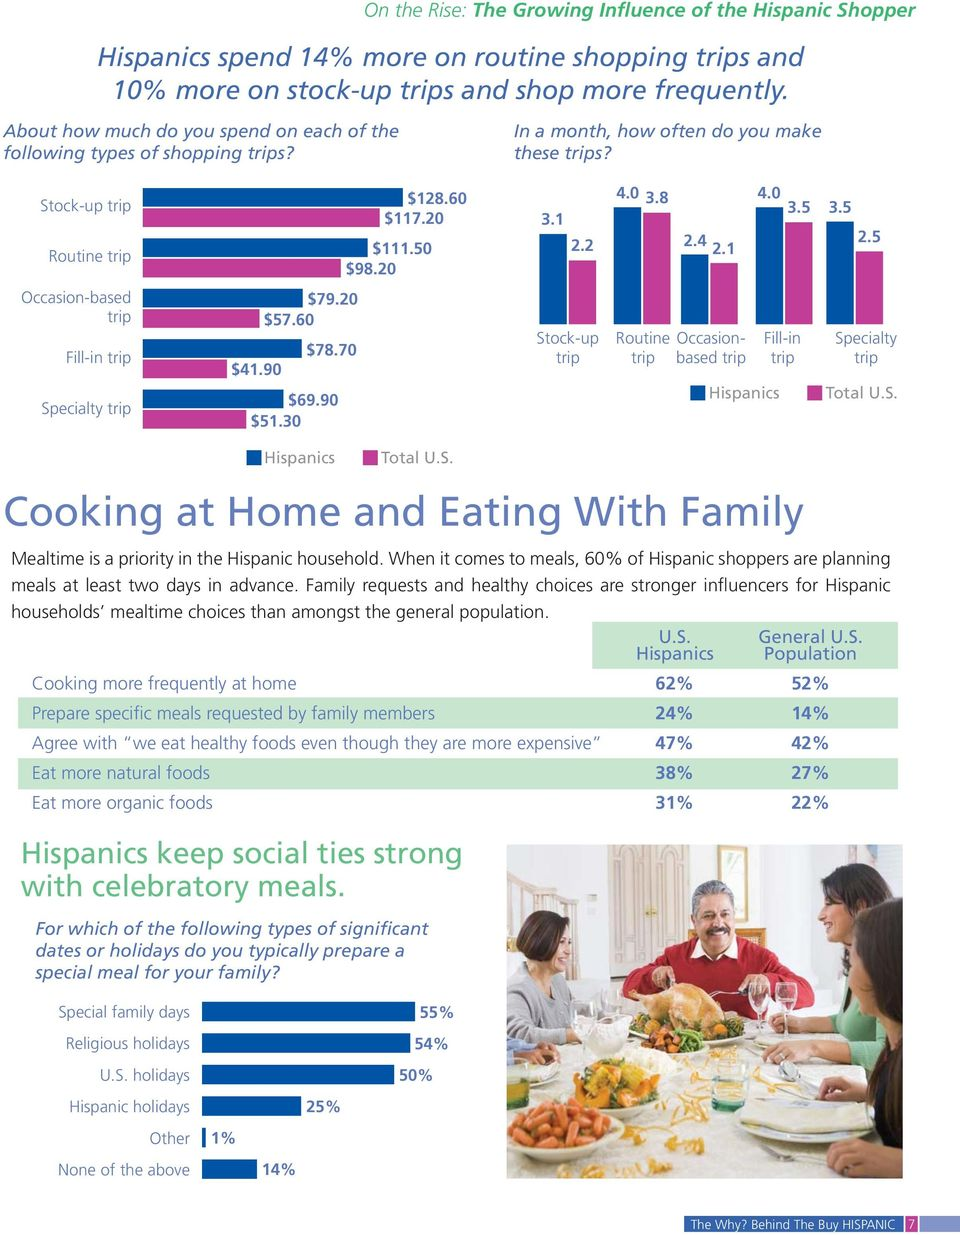 90 $79.20 $57.60 $78.70 $69.90 $51.30 Stock-up trip Routine trip Occasionbased trip Fill-in trip Specialty trip Total U.S. Total U.S. Cooking at Home and Eating With Family Mealtime is a priority in the Hispanic household.